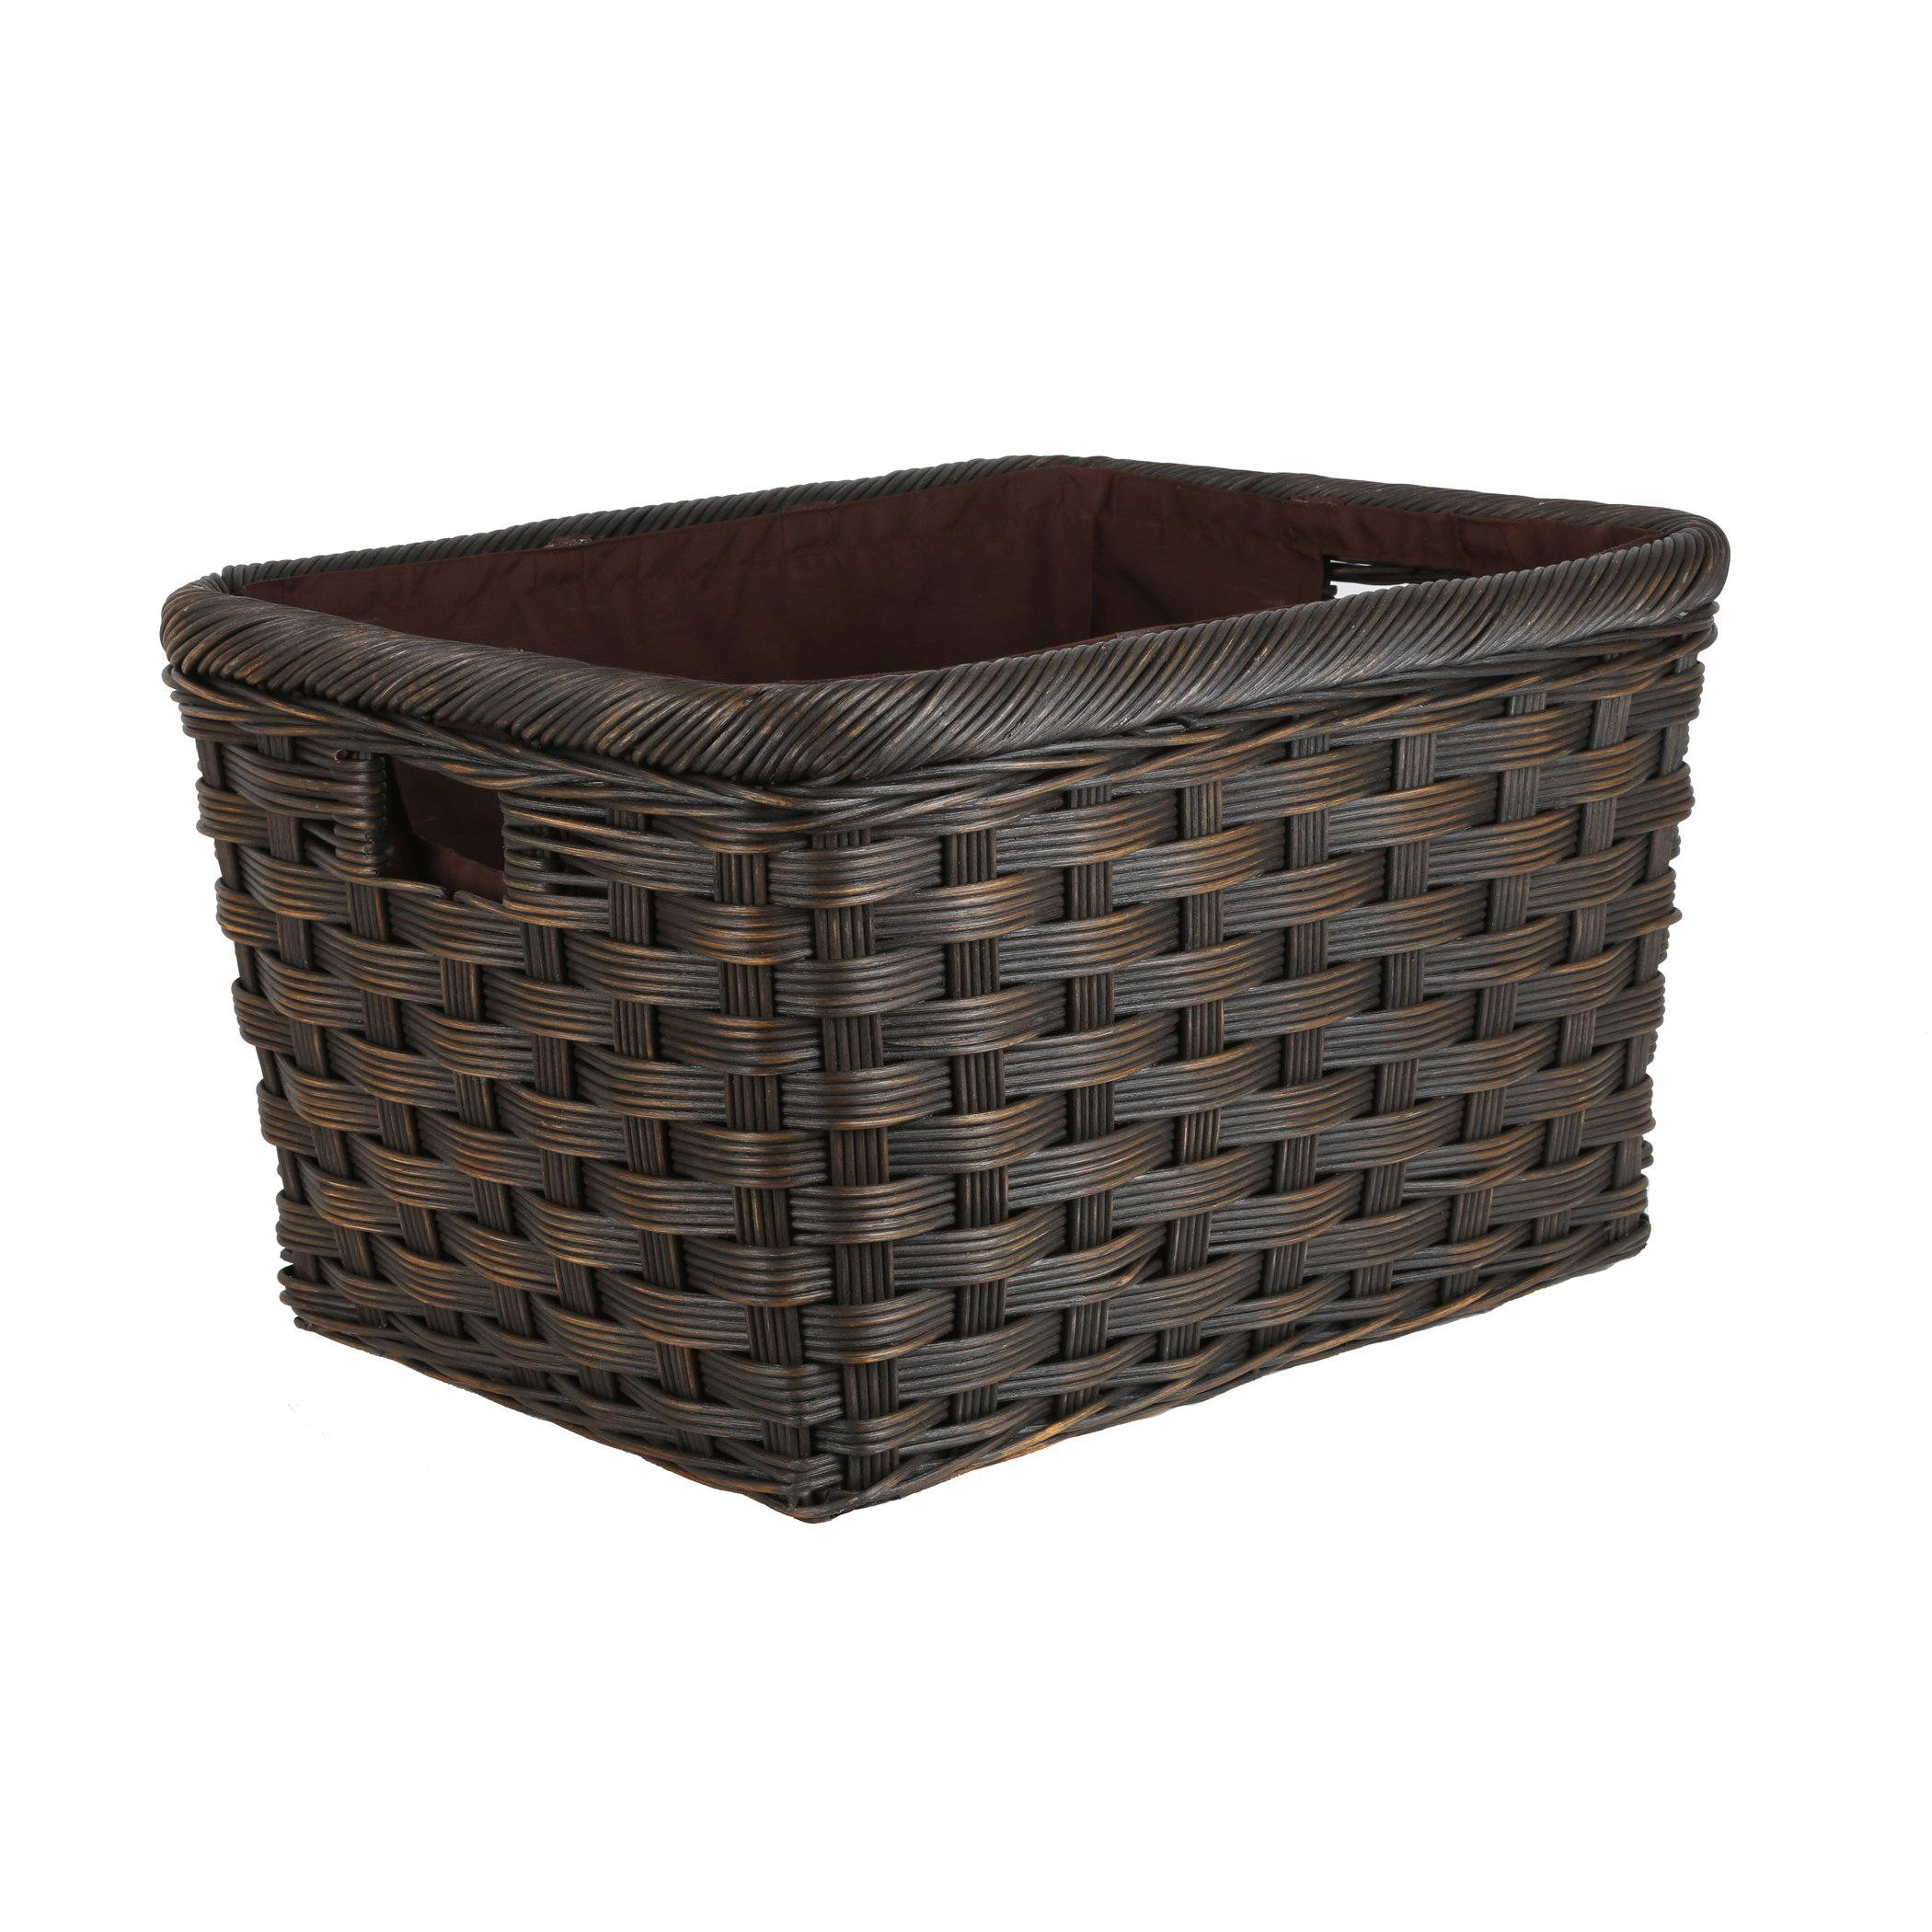 The Basket Lady Jumbo Wicker Storage Basket, XL, Antique Walnut Brown